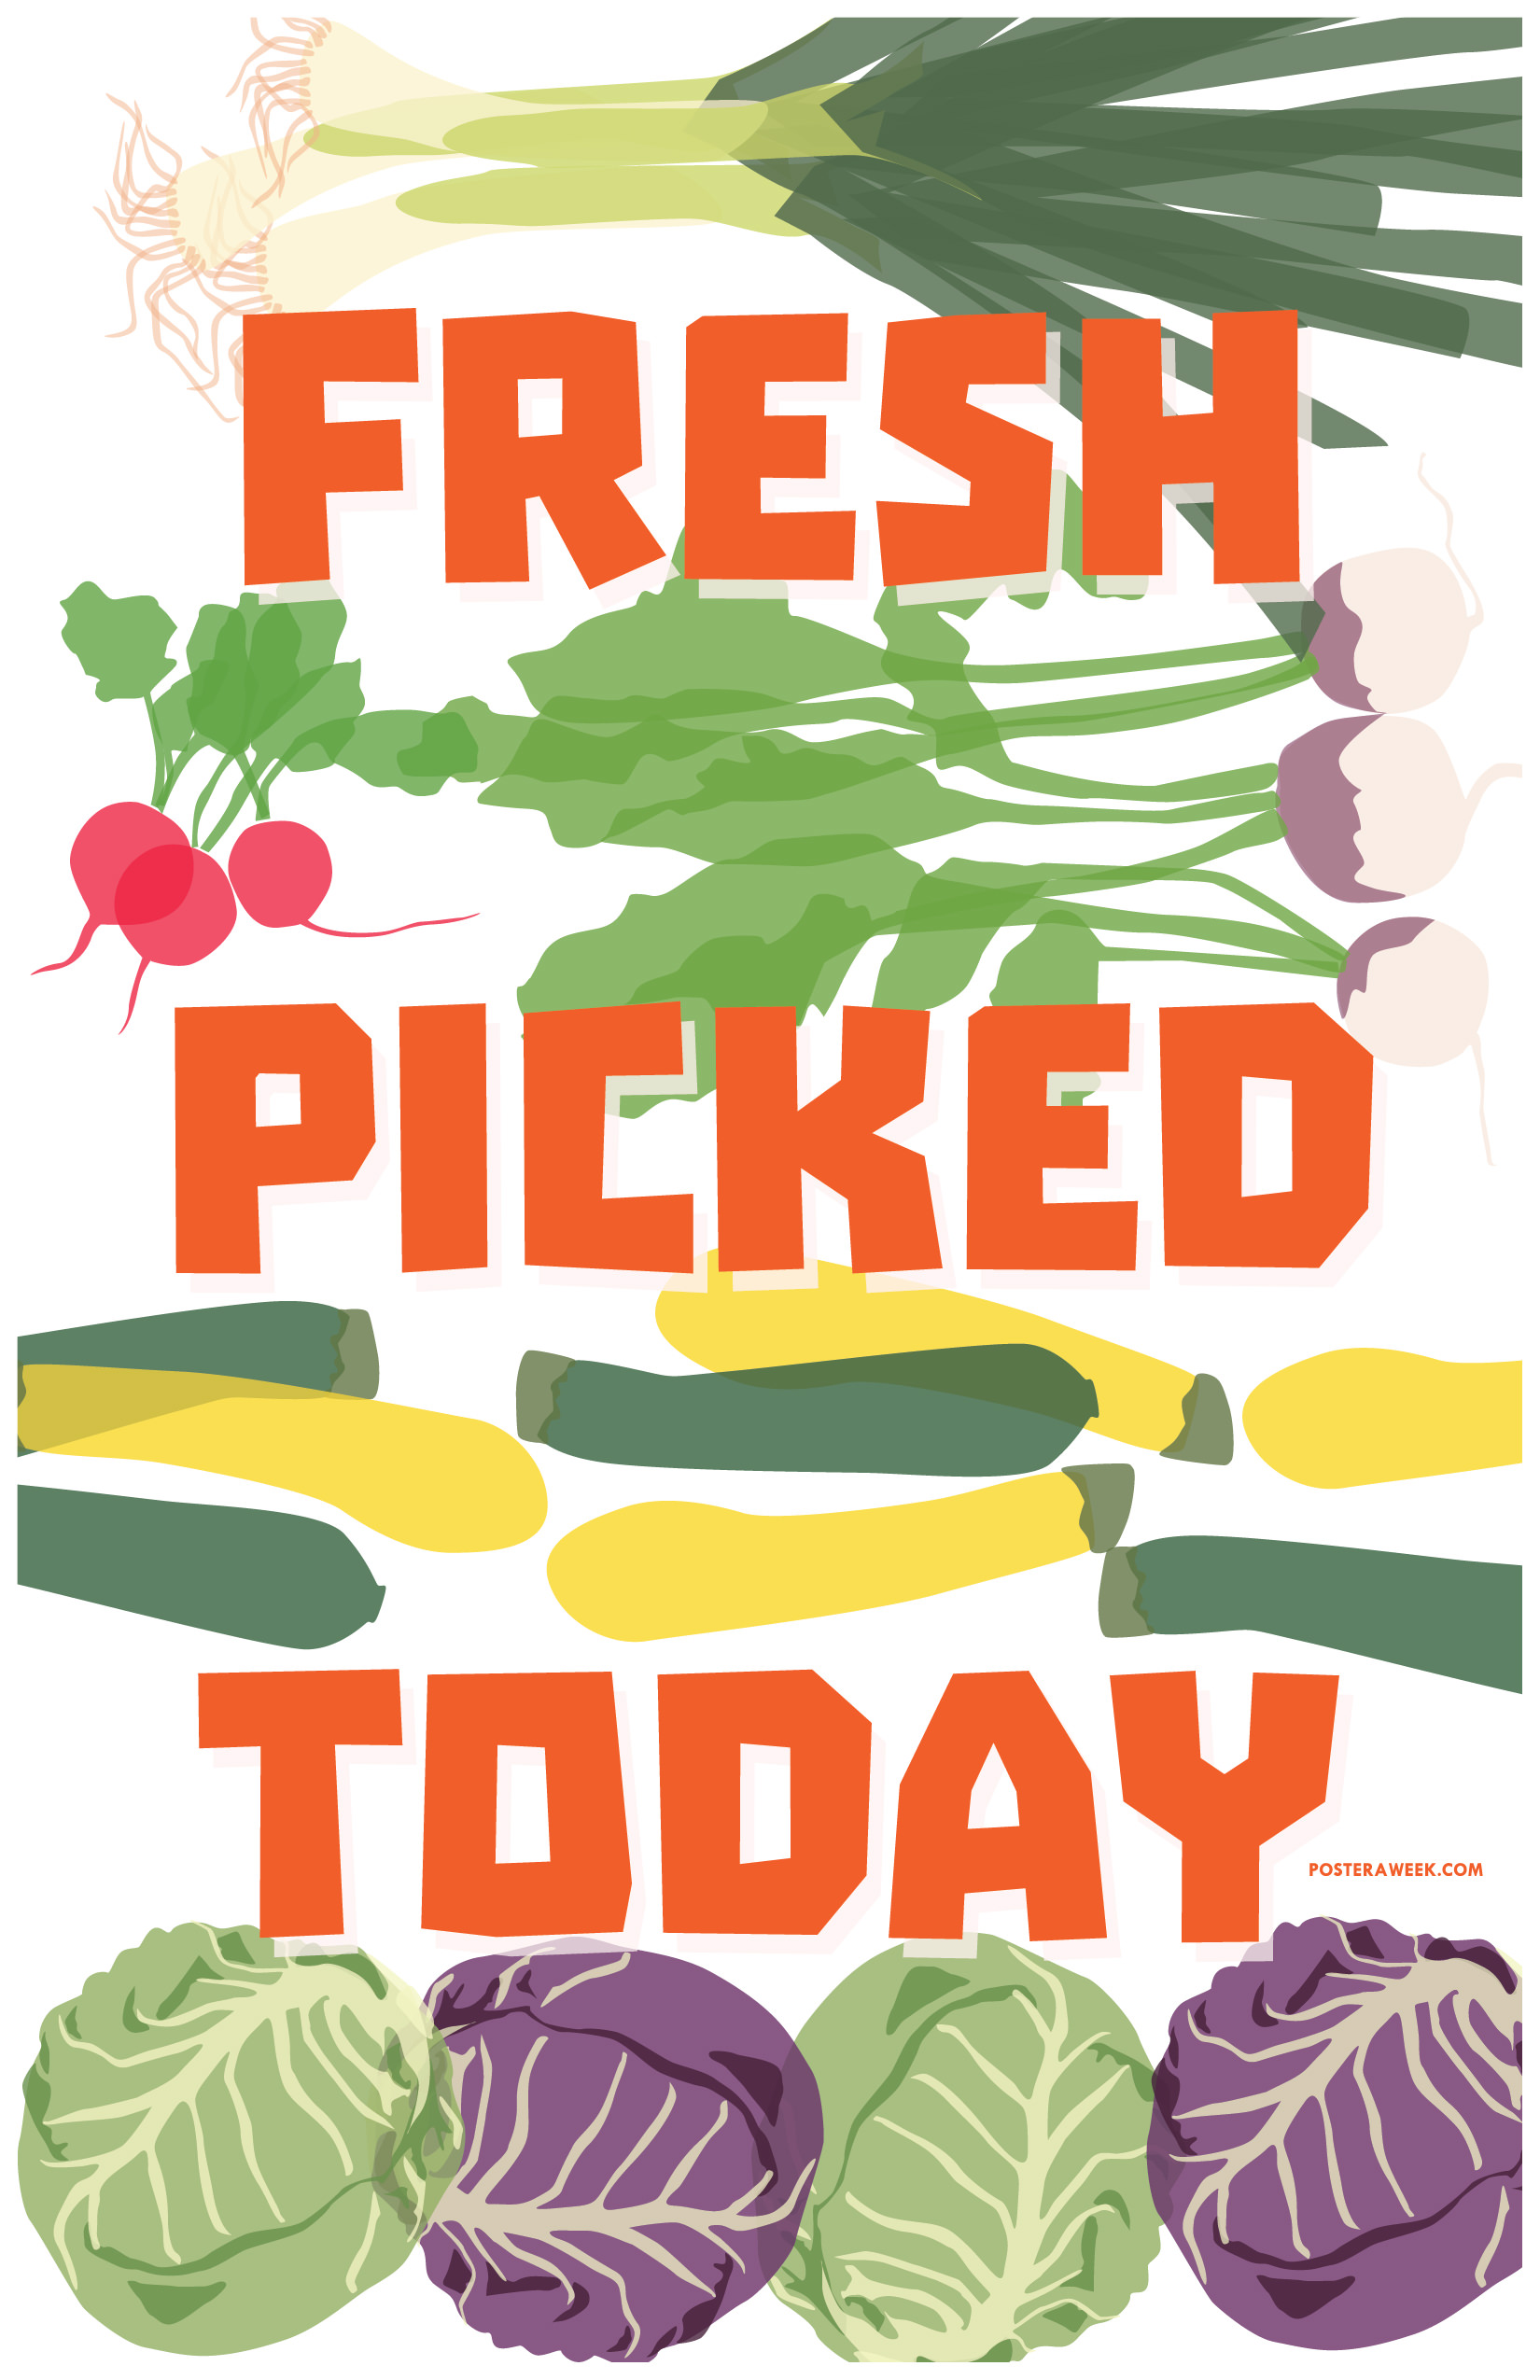 Poster a Week Free Posters Online - This Week: Food Moxie